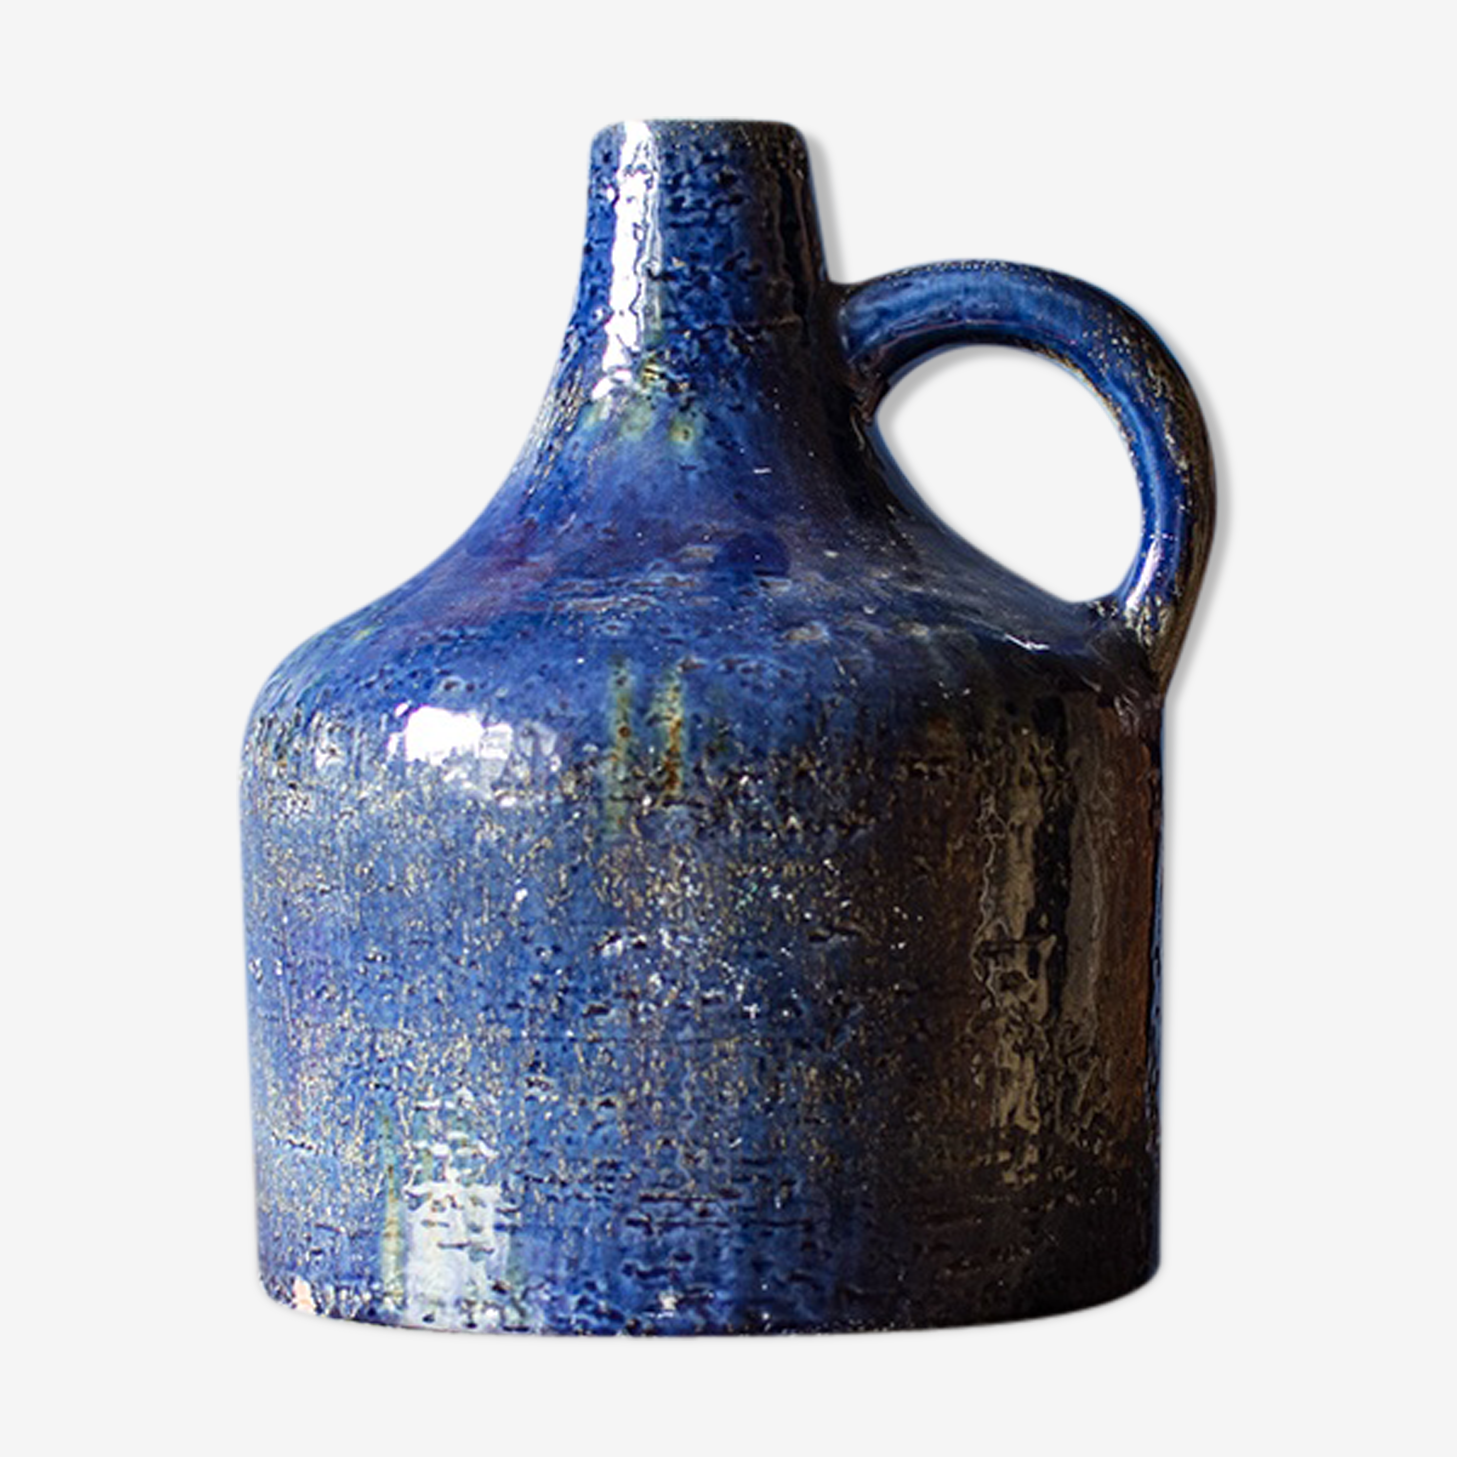 Carstens jug from the 70s